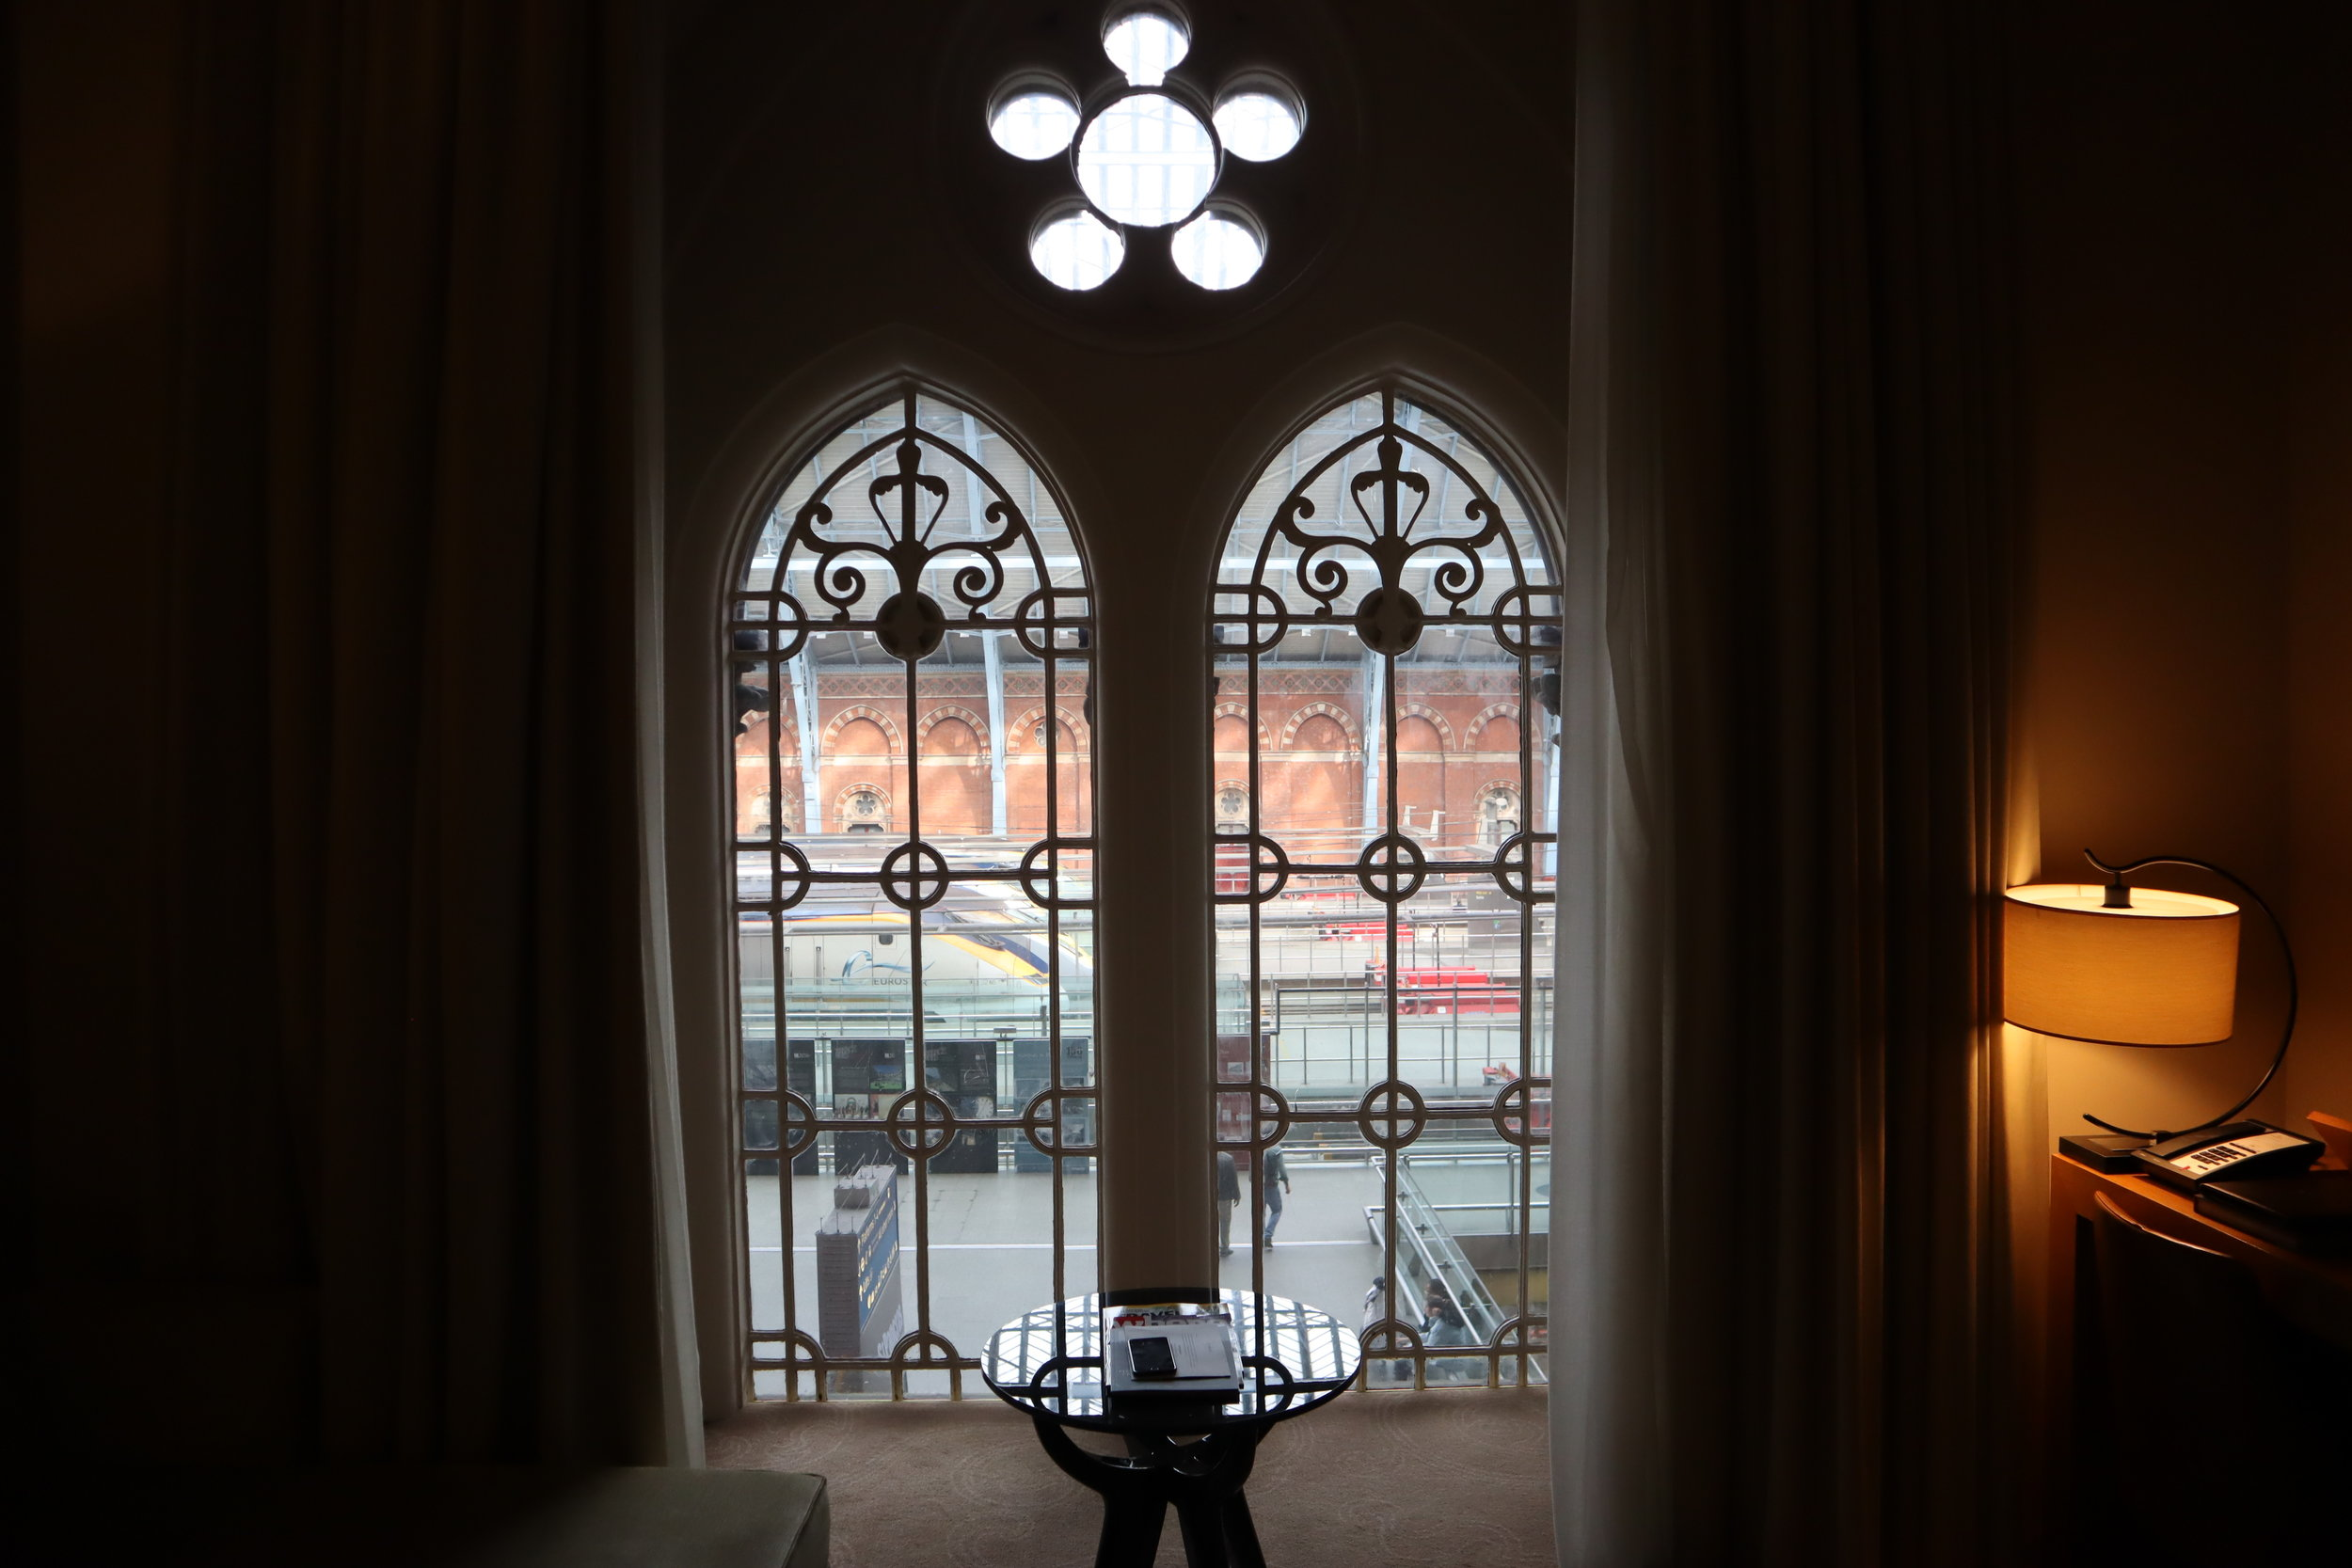 St. Pancras Renaissance Hotel London – Gothic windows